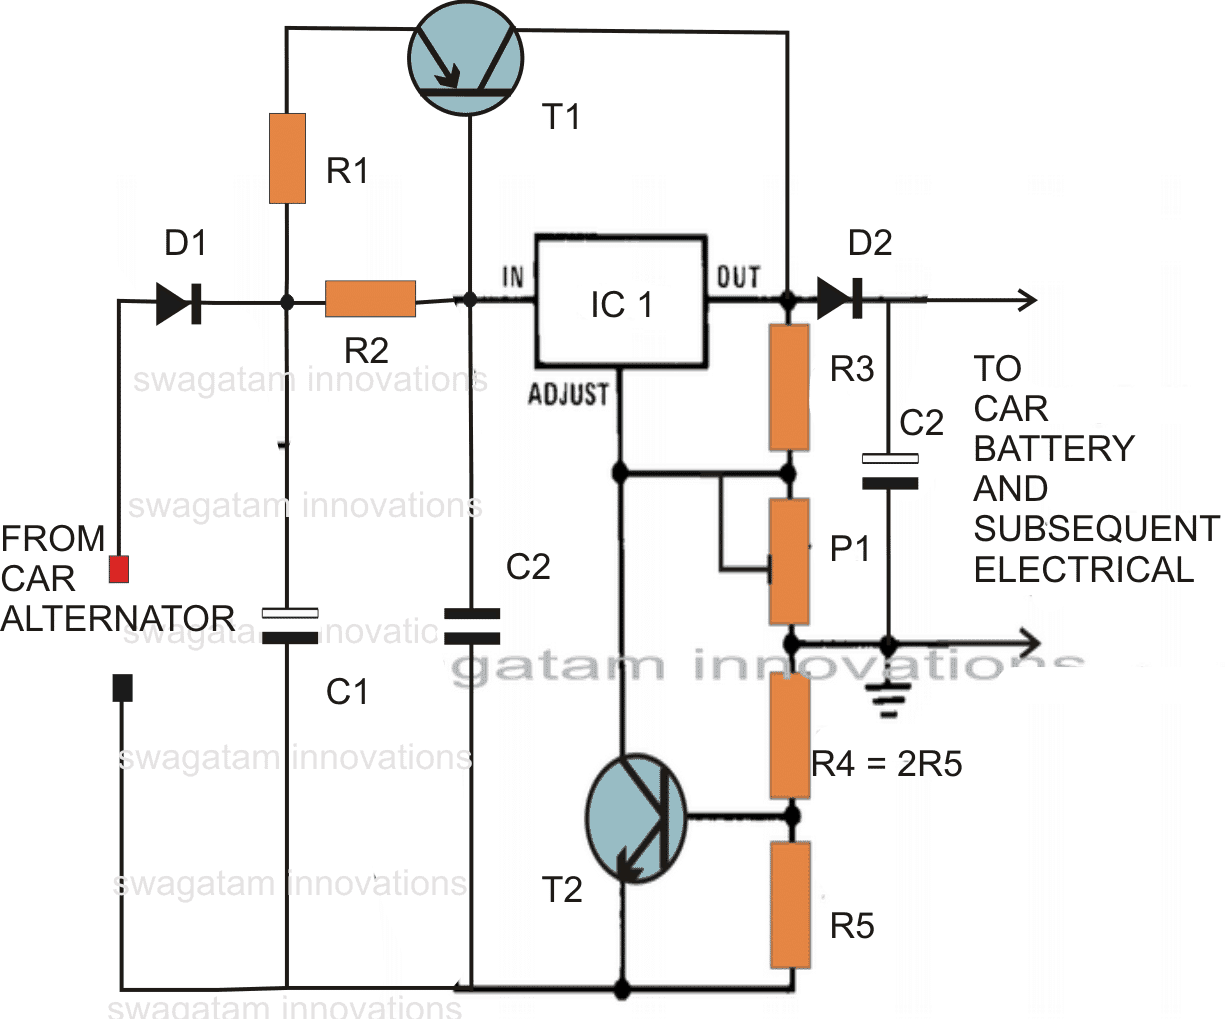 hight resolution of voltage regulator circuit diagram in vehicle voltage regulator gas club car voltage regulator wiring diagram wiring diagram car voltage regulator